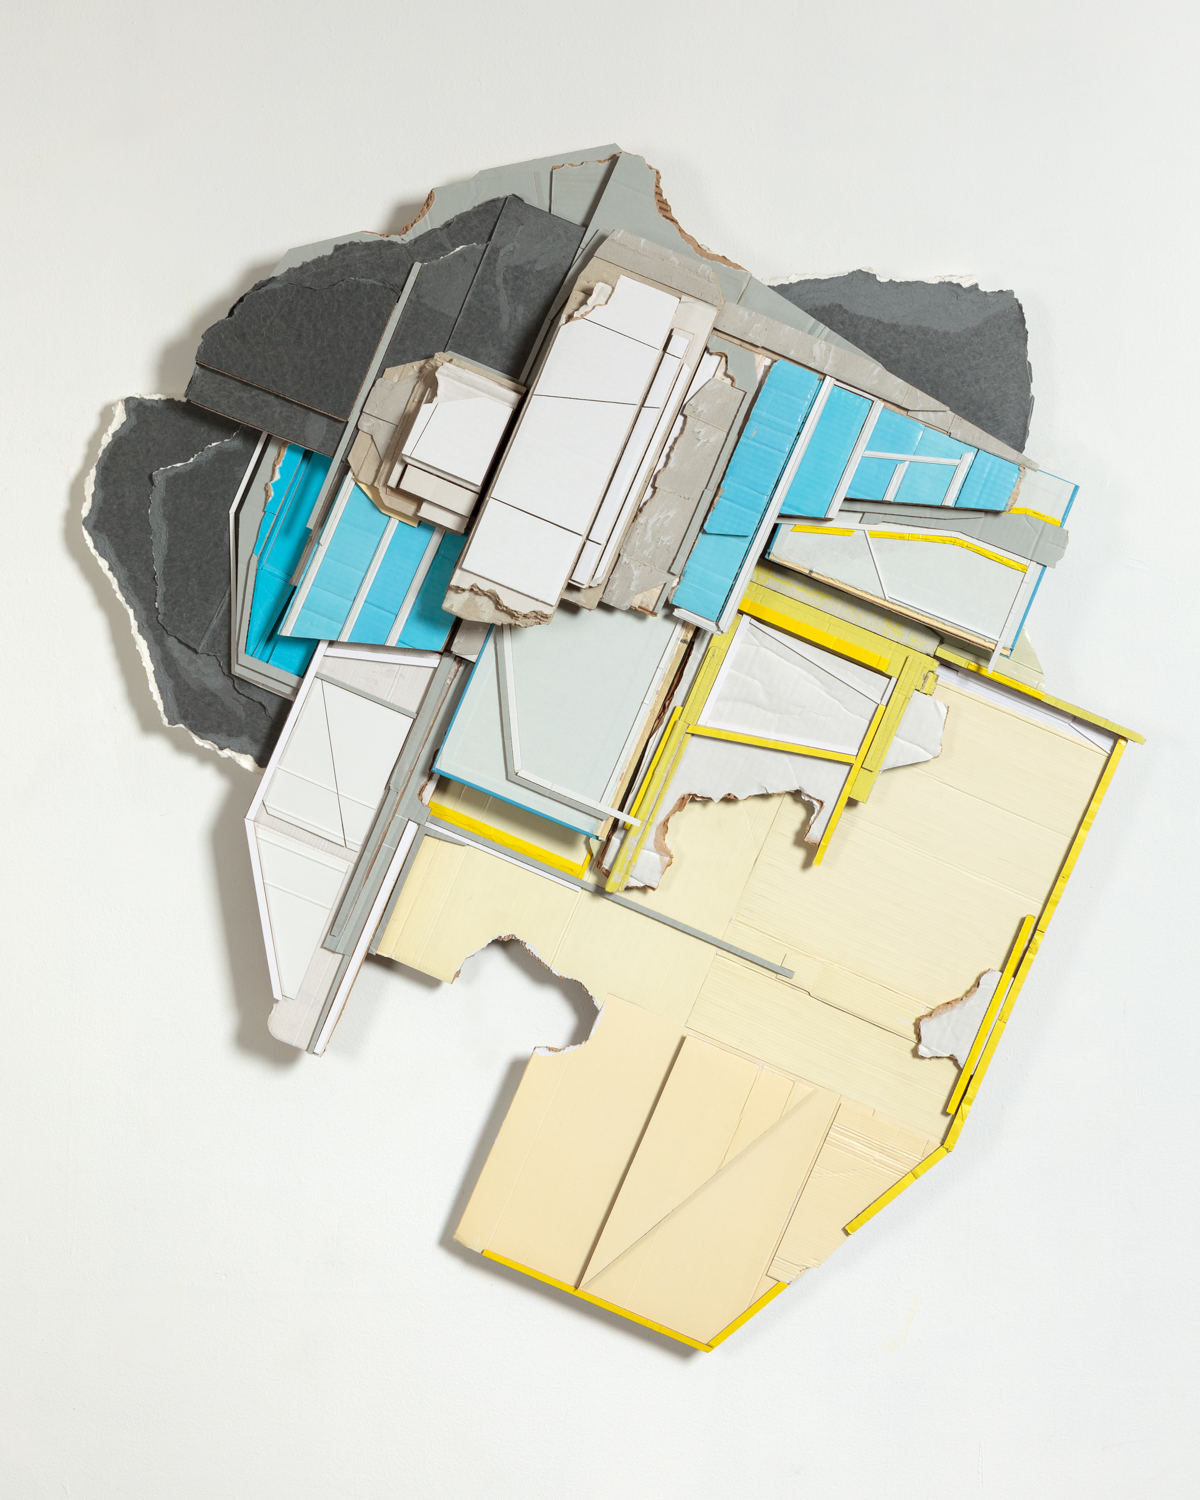 Inter-mission  , 2015  found (unpainted) cardboard, cut book cover, foamcore  47.5 x 43 x 4 inches  Private Collection